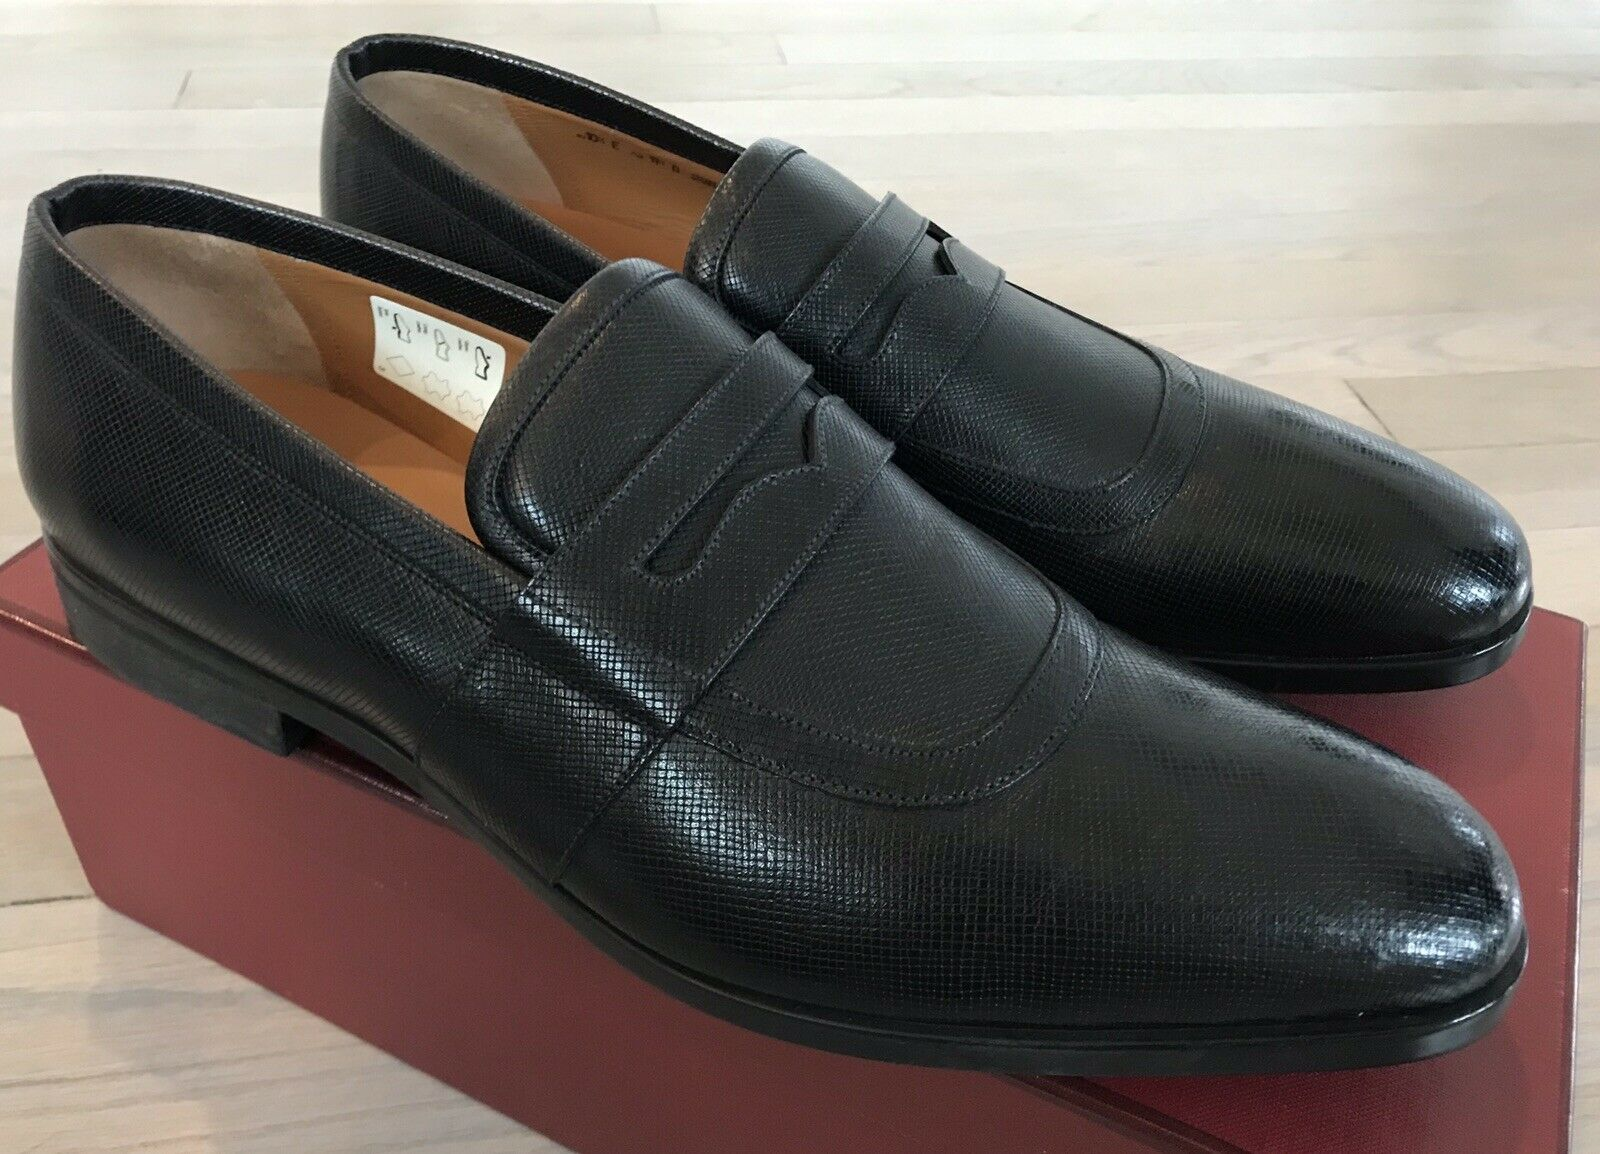 650  Bally Black Lahney Leather Loafers Size US 12 Made in Switzerland